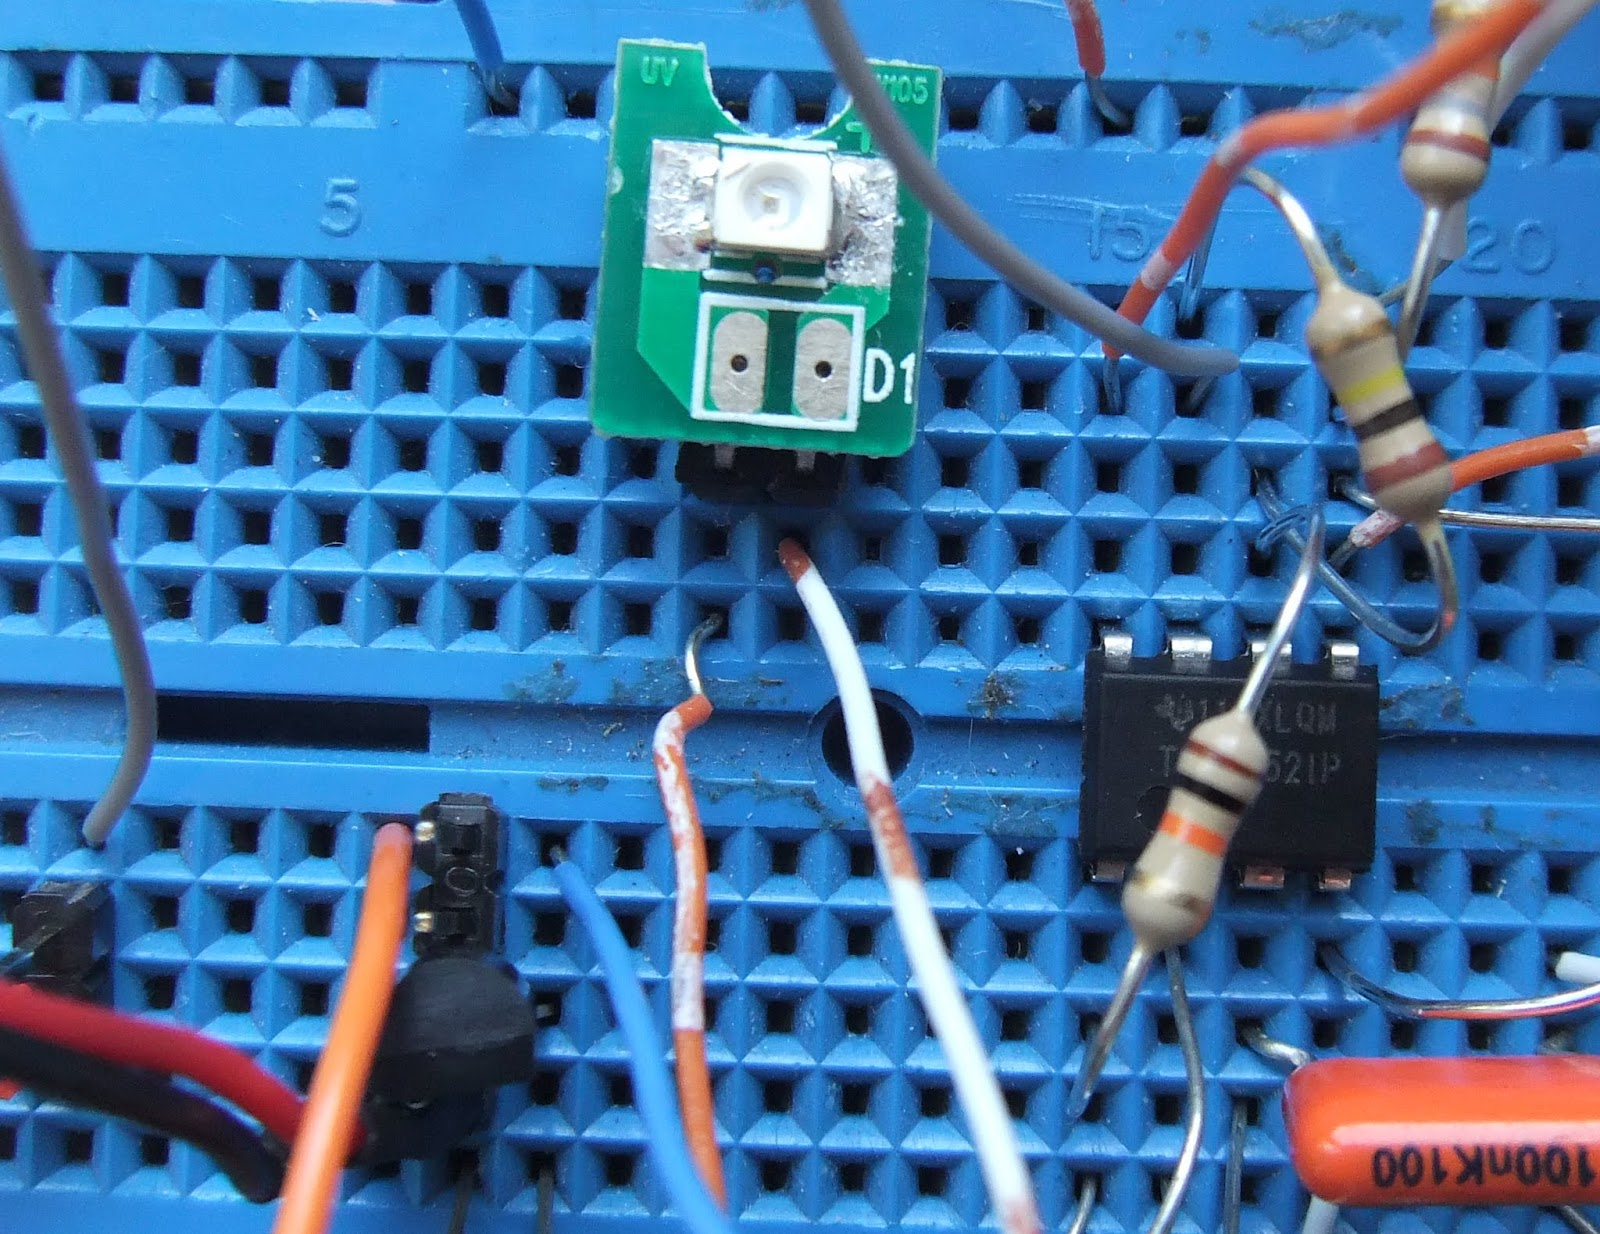 Michael Saunby: Building a UV Index recorder for MSP430, Arduino